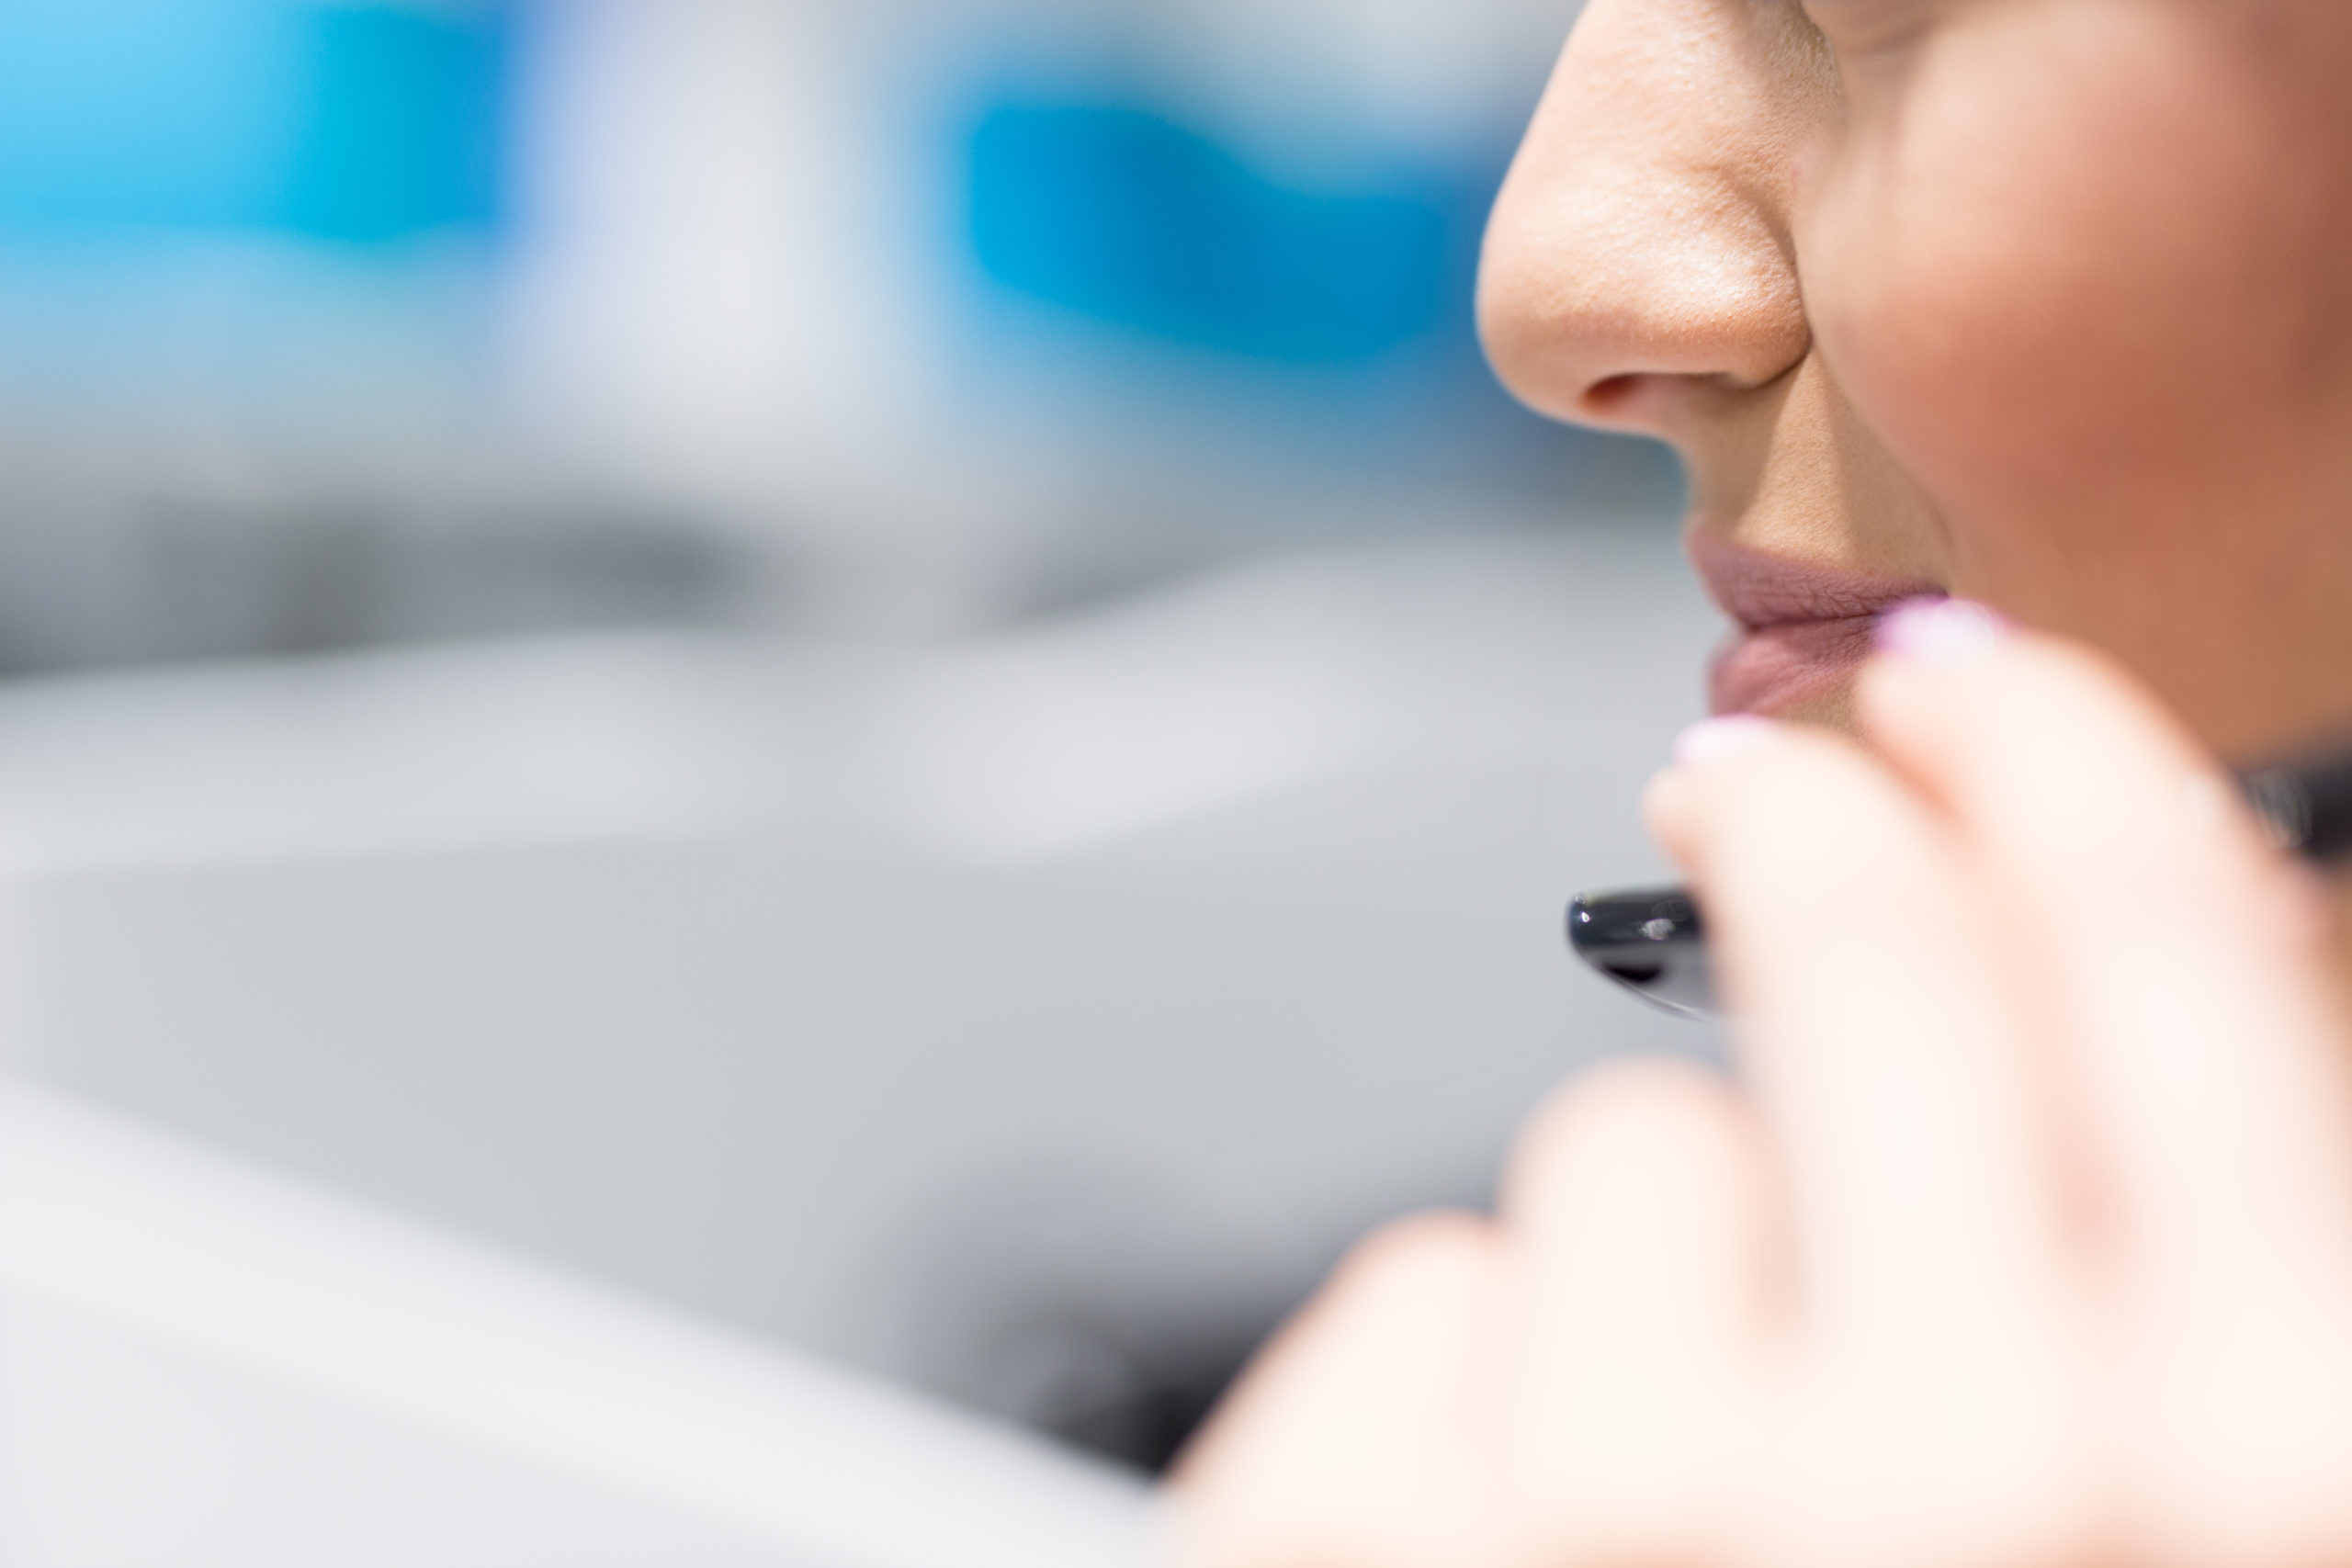 Voice Quality Matters: Quarter of Employees Working From Home Still Experiencing Regular Connectivity Issues 41